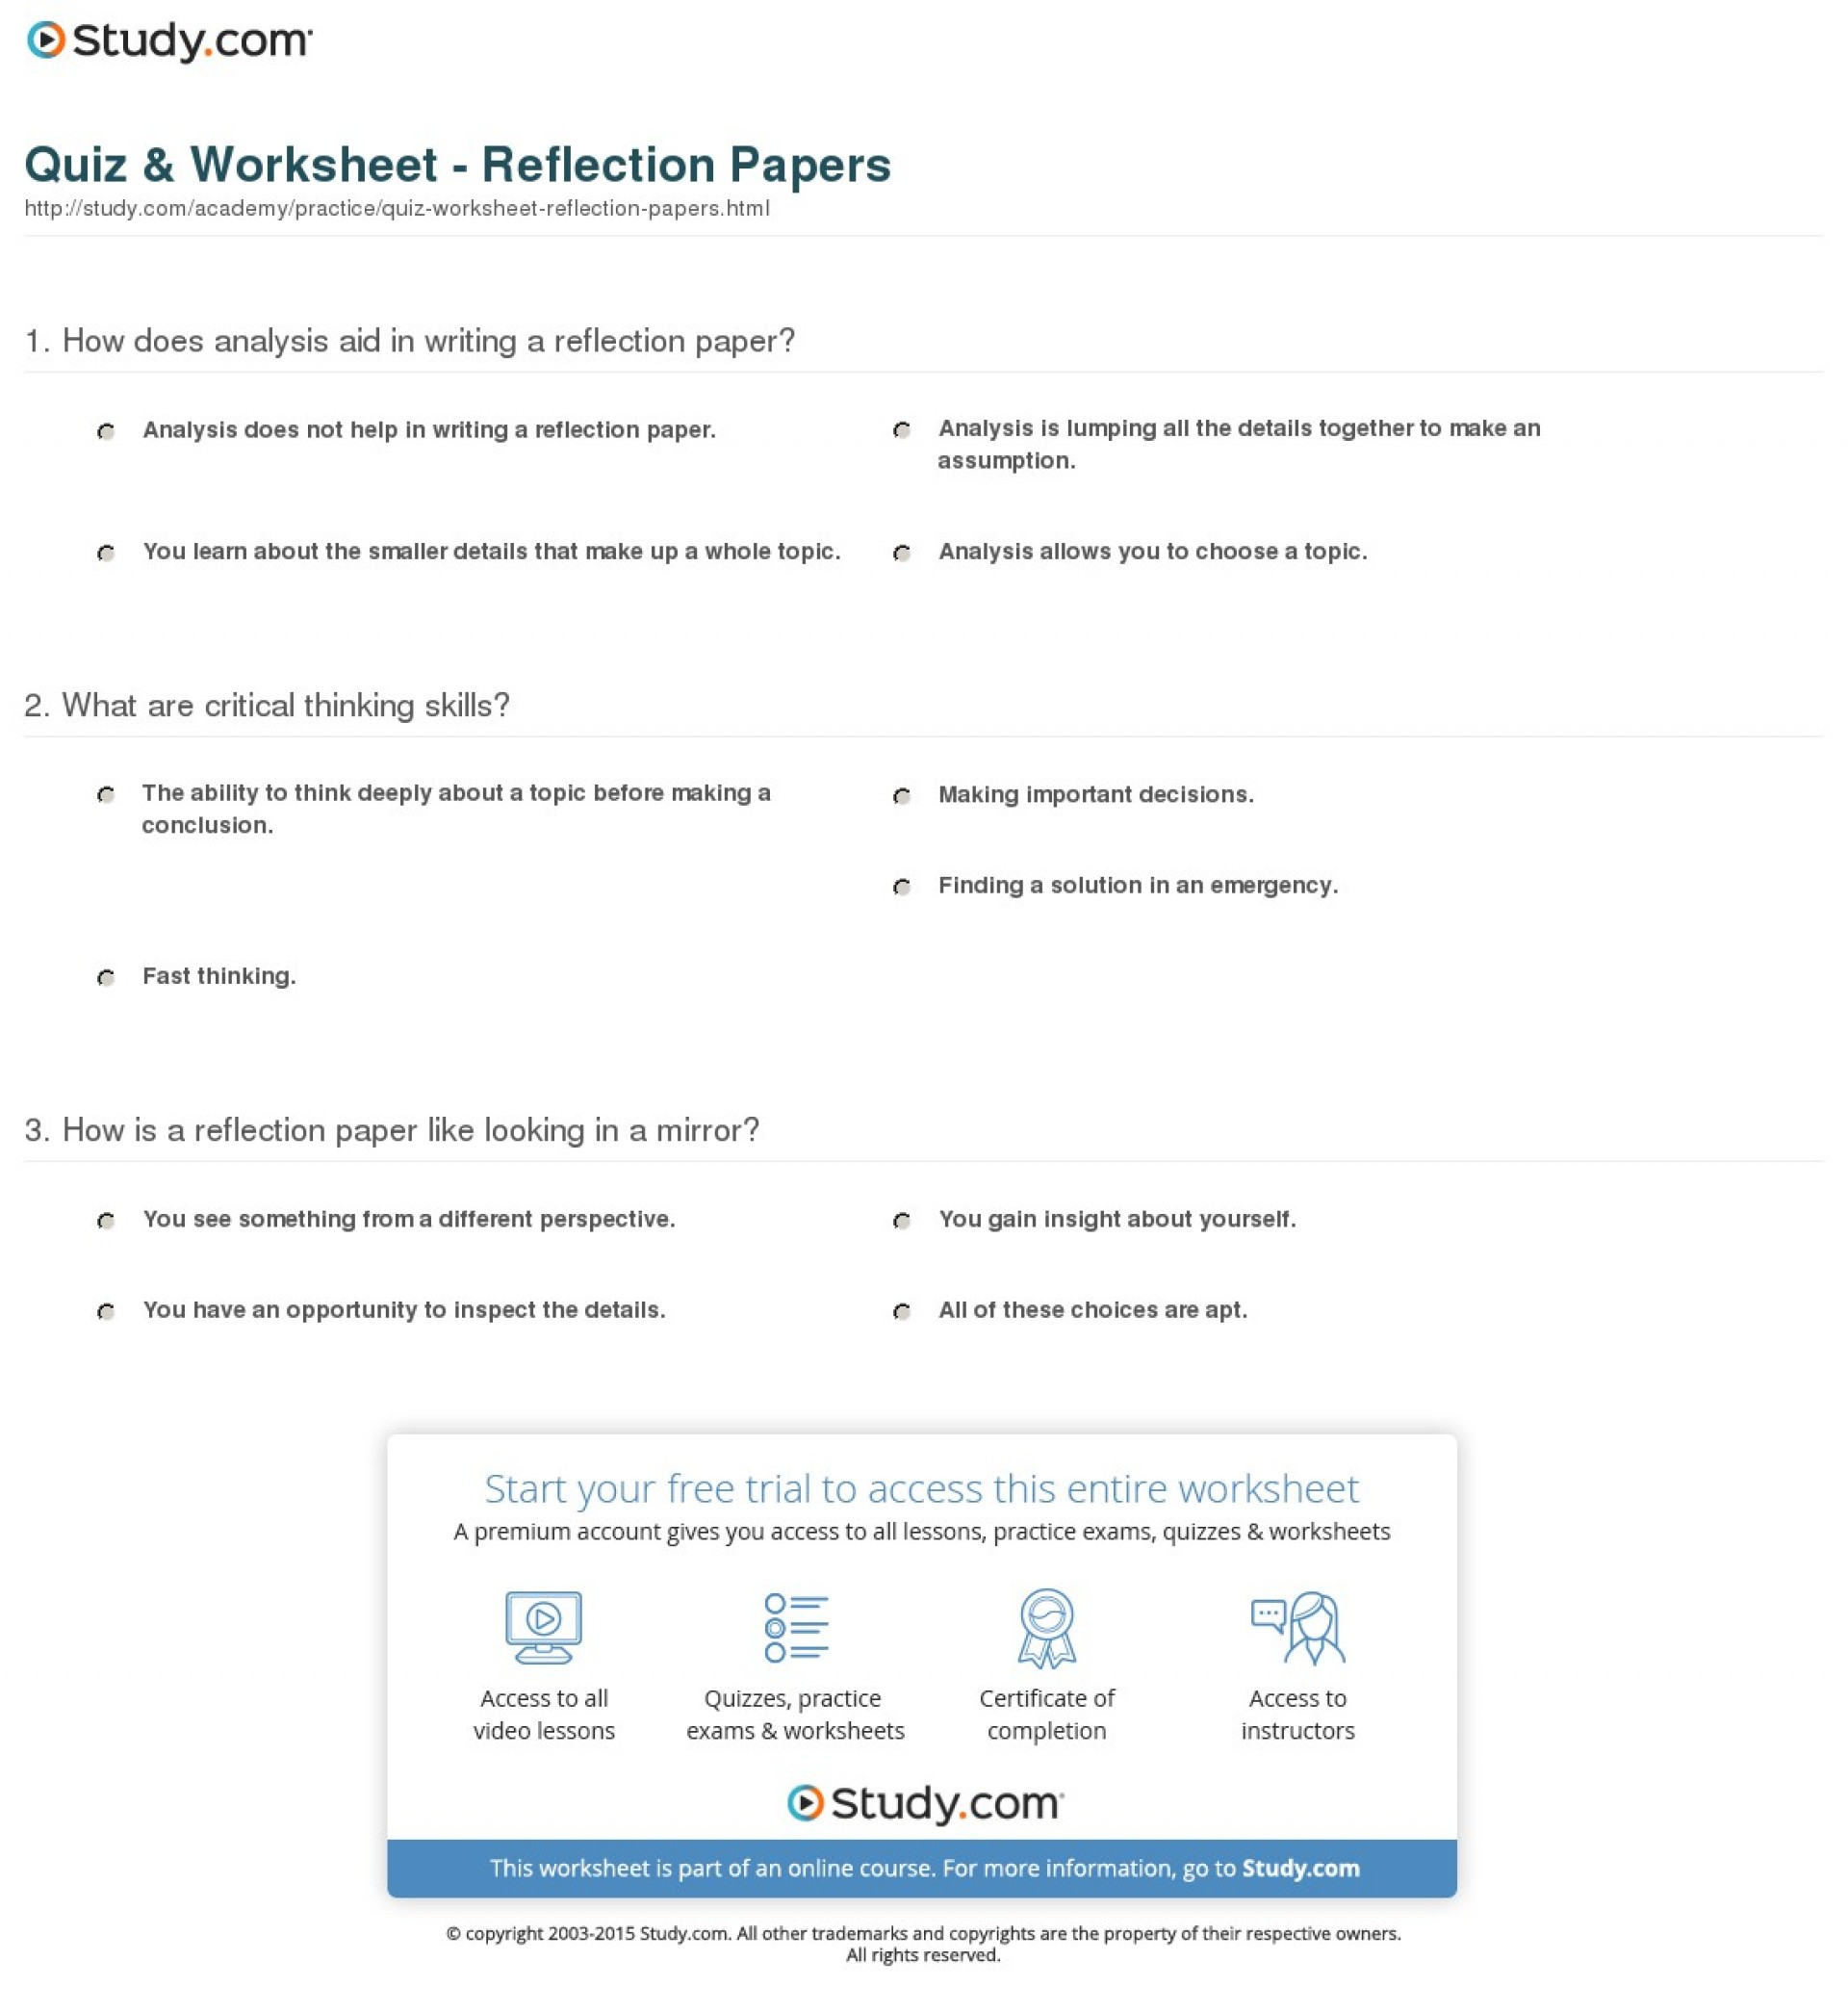 003 Research Paper Parts Of Quiz Worksheet Reflection Impressive A 1920